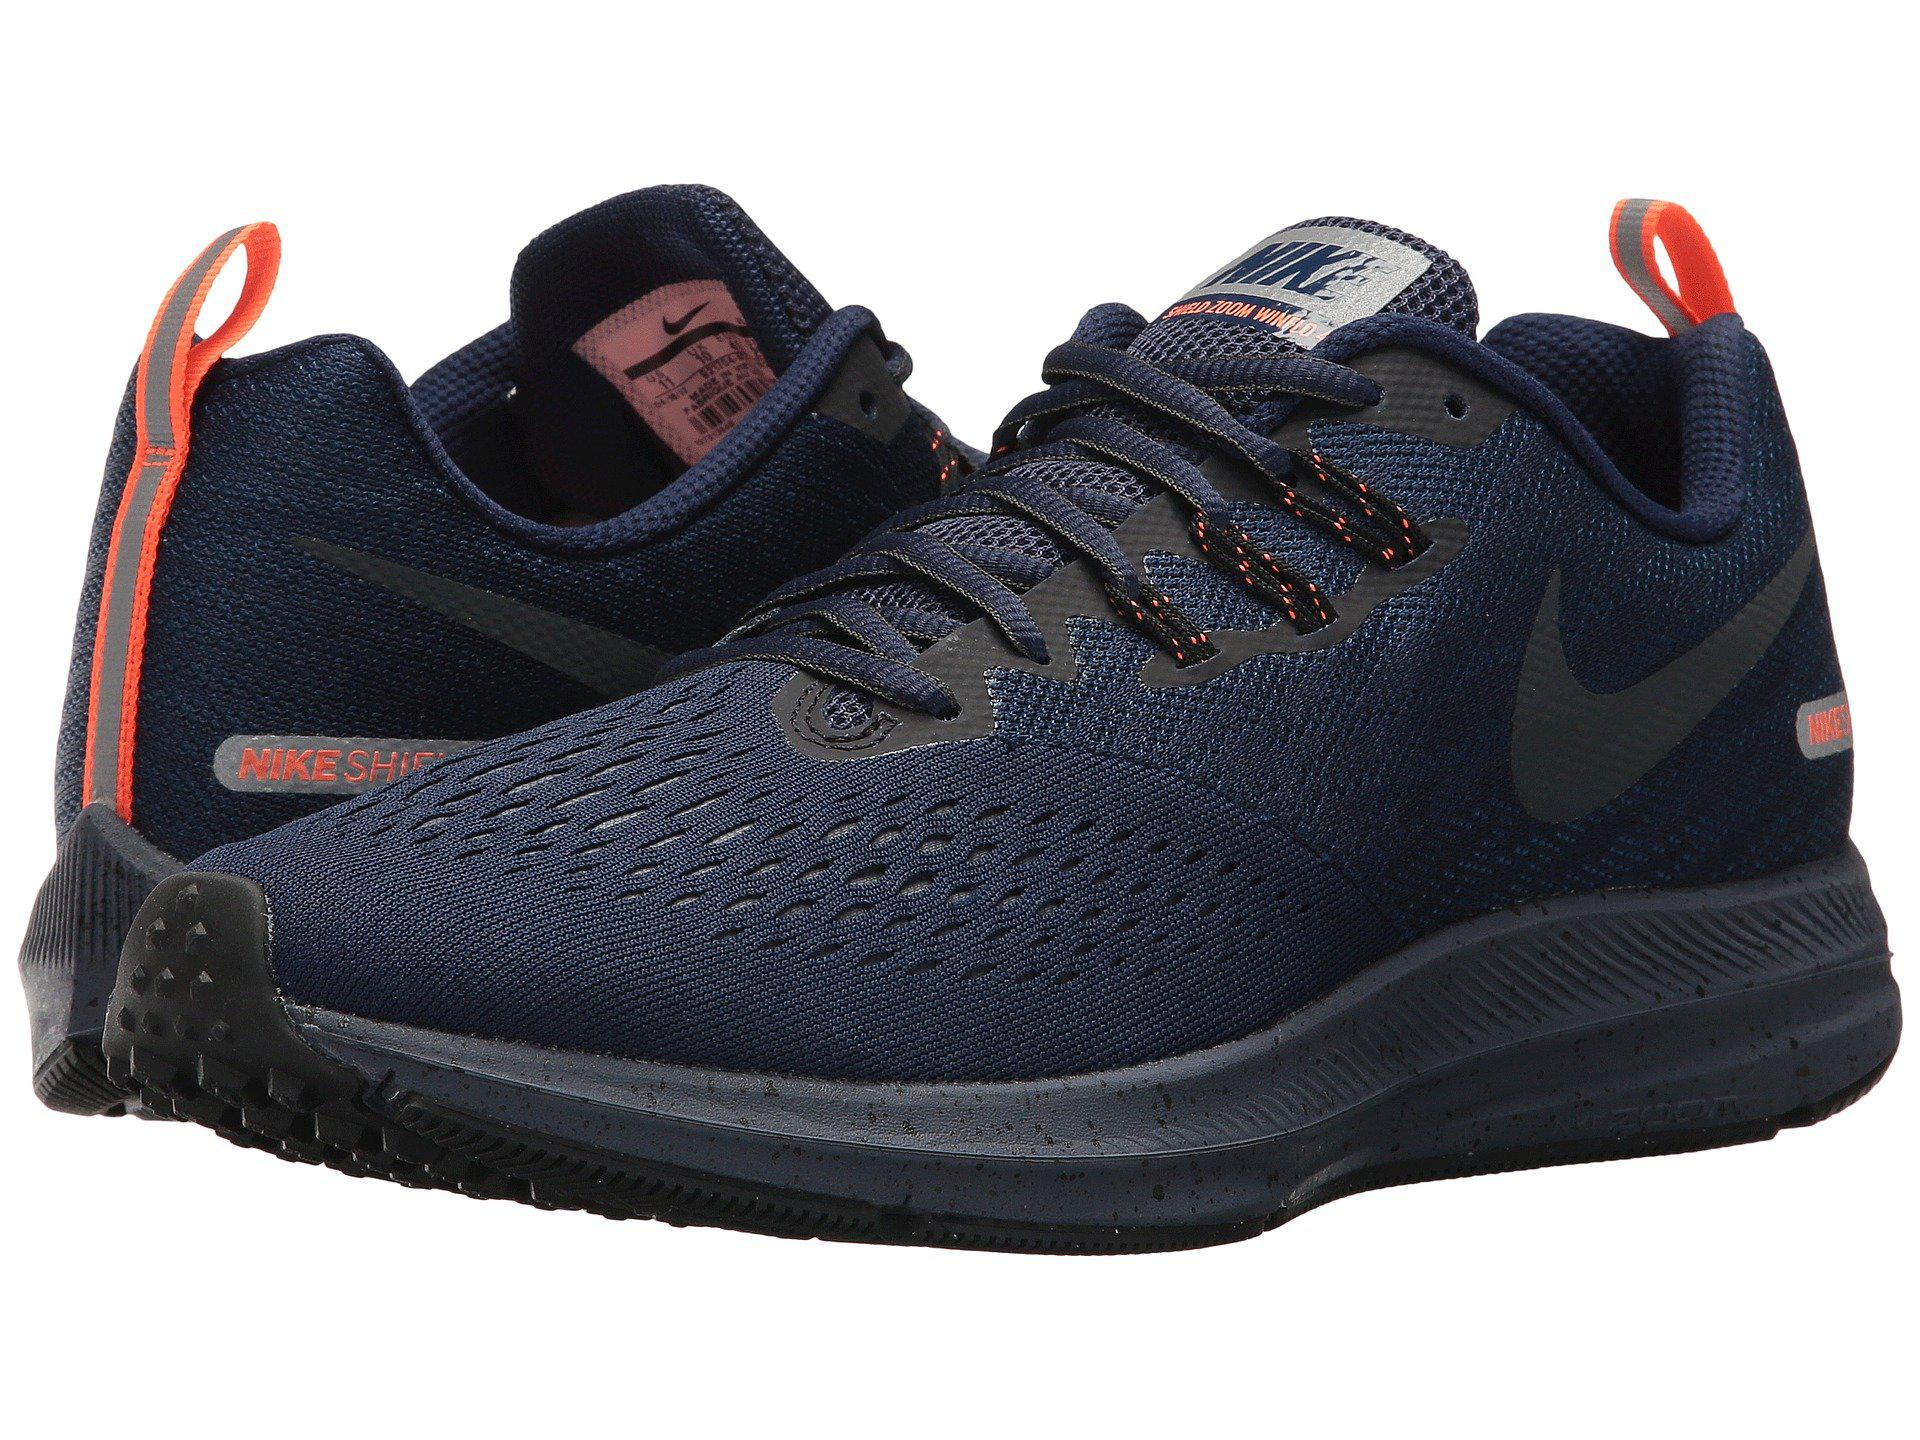 huge selection of a5af2 73349 Nike Air Zoom Winflo 4 Shield in Blue for Men - Lyst